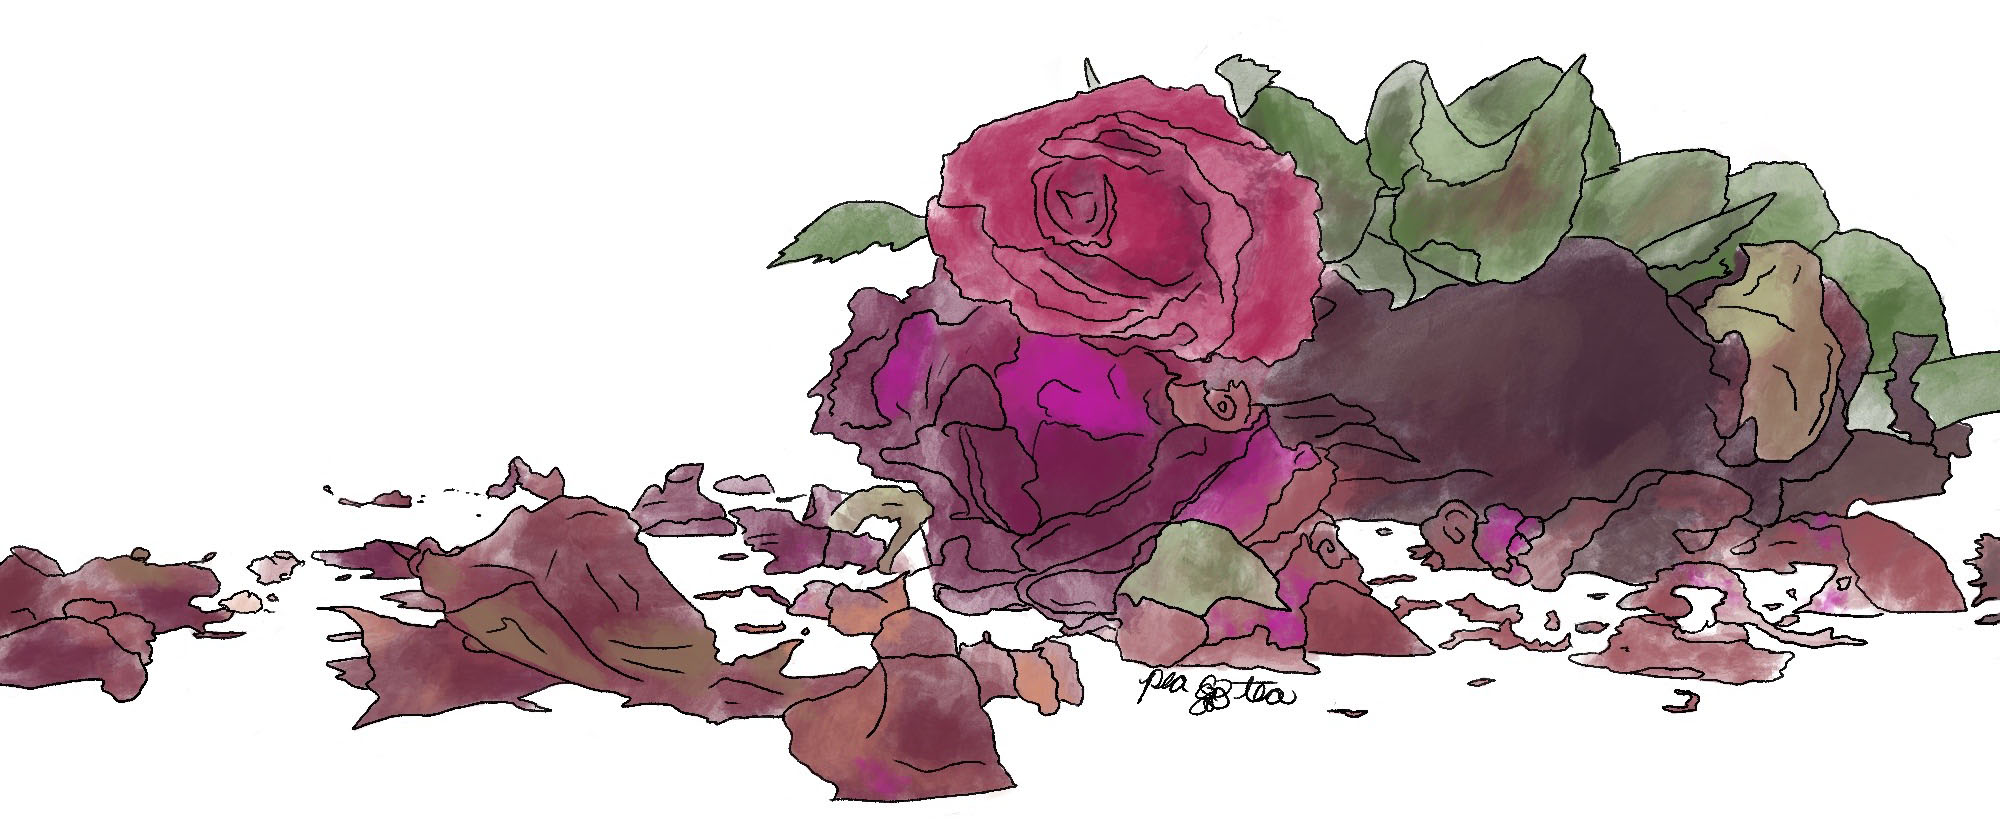 Watercolor painting of red roses, drying and dying. Petals are scattered around on the ground.